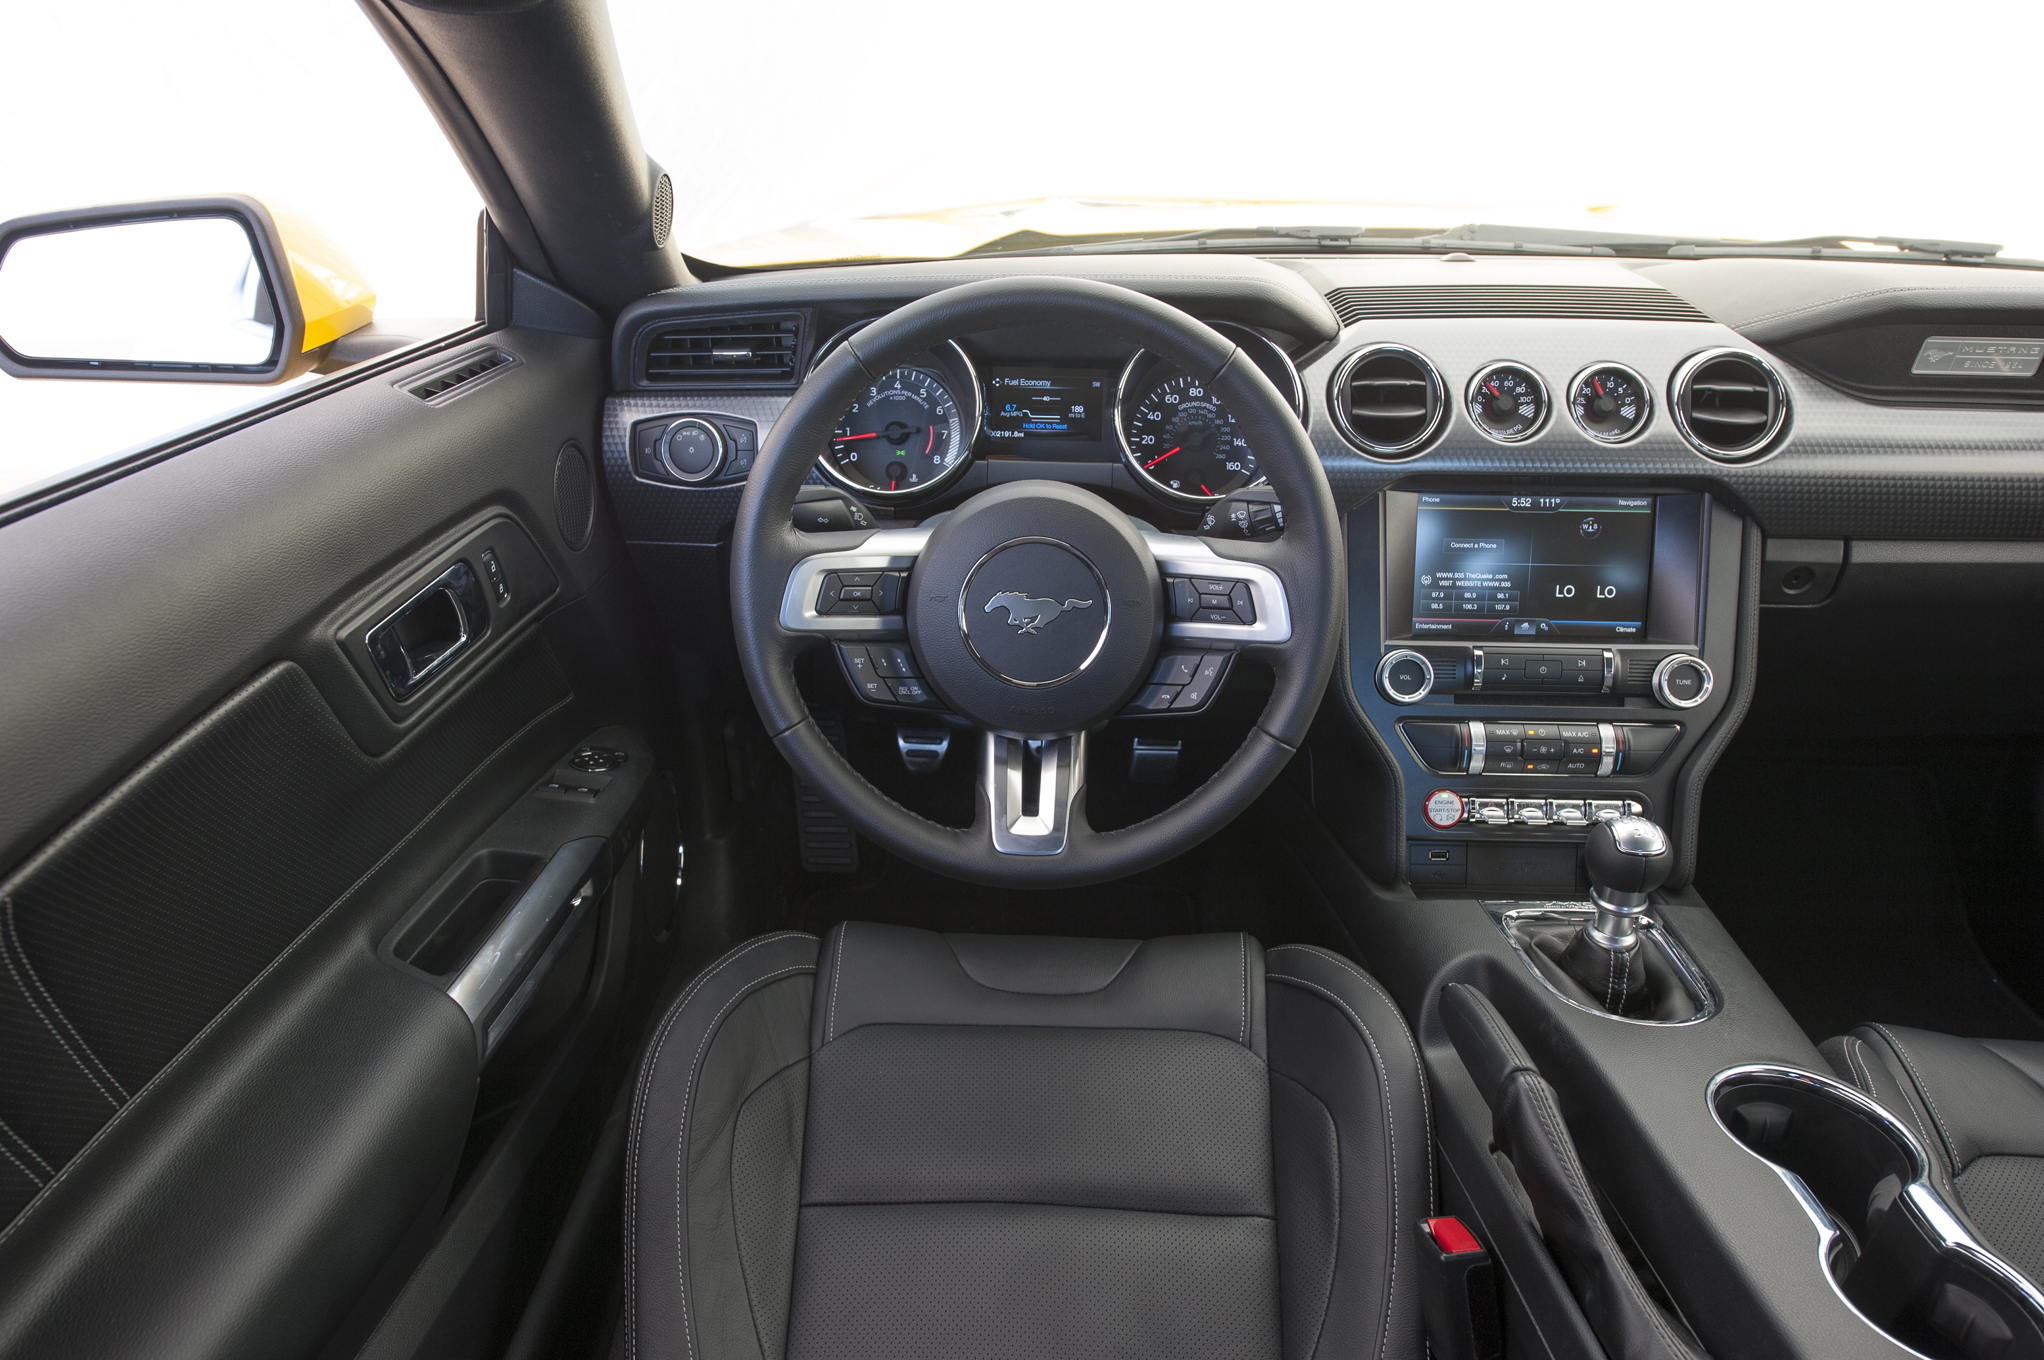 2015 Ford Mustang Gt Cockpit And Speedometer (Photo 5 of 30)